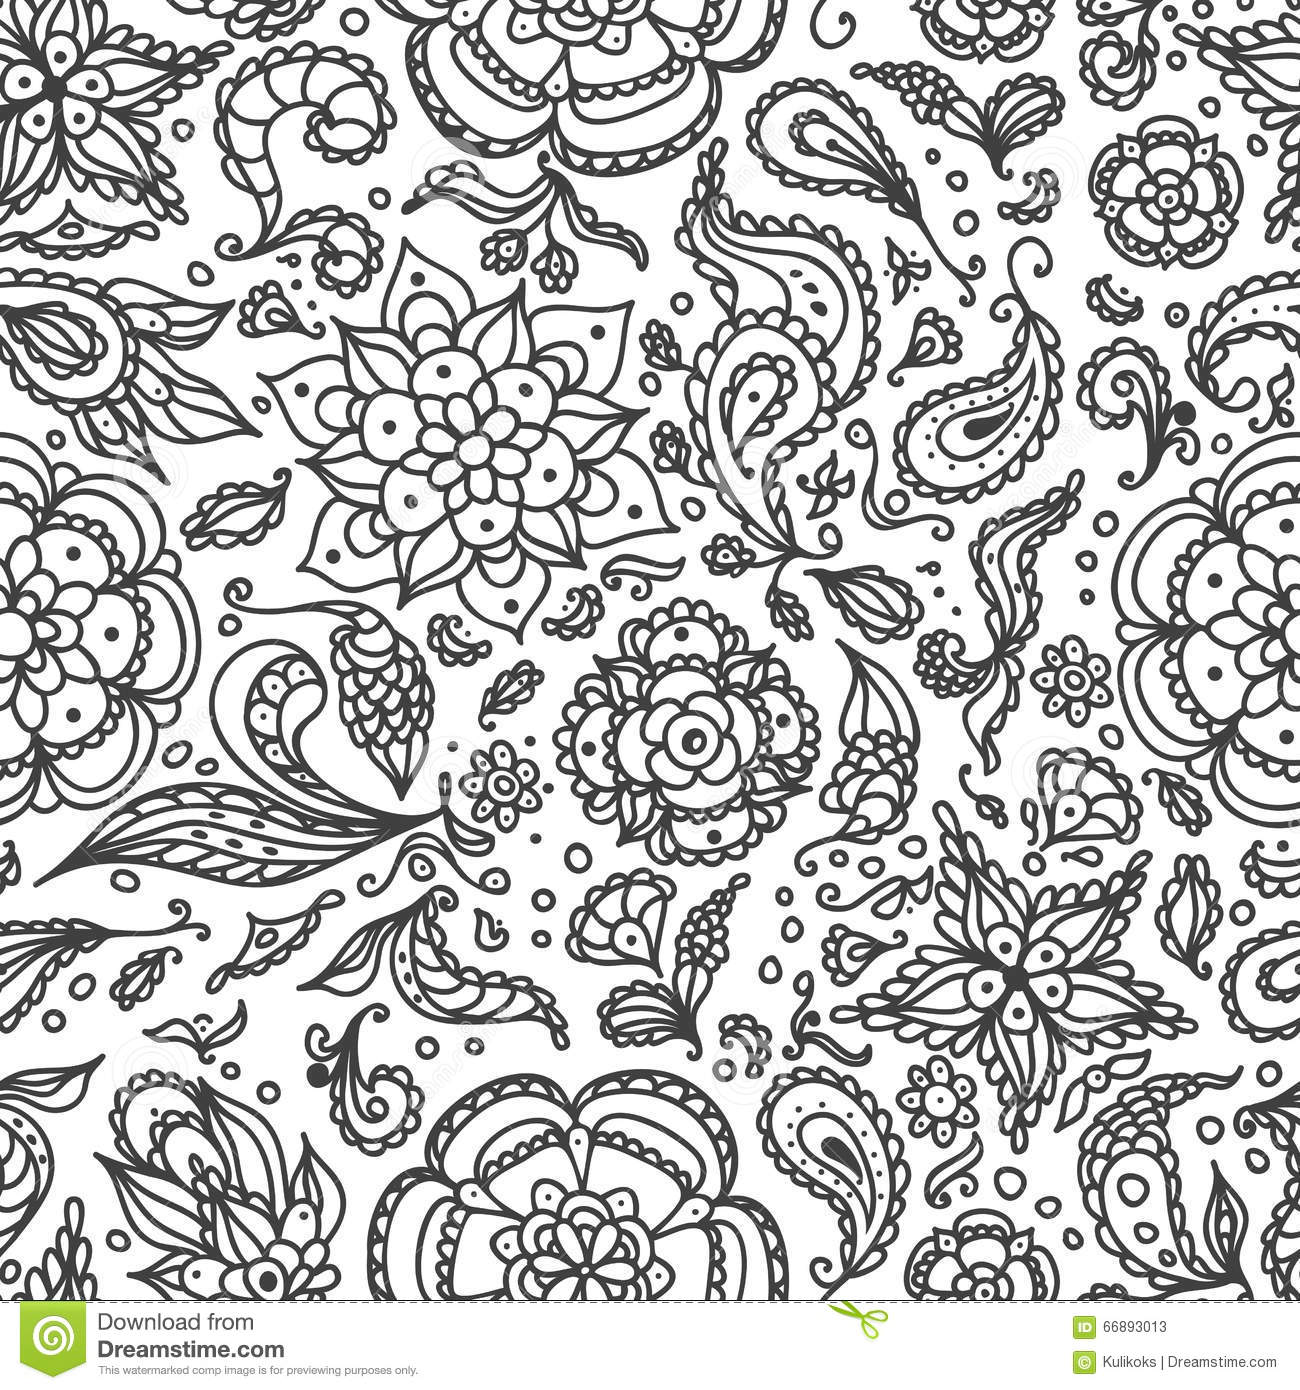 seamless abstract floral pattern with flowers petals leaves